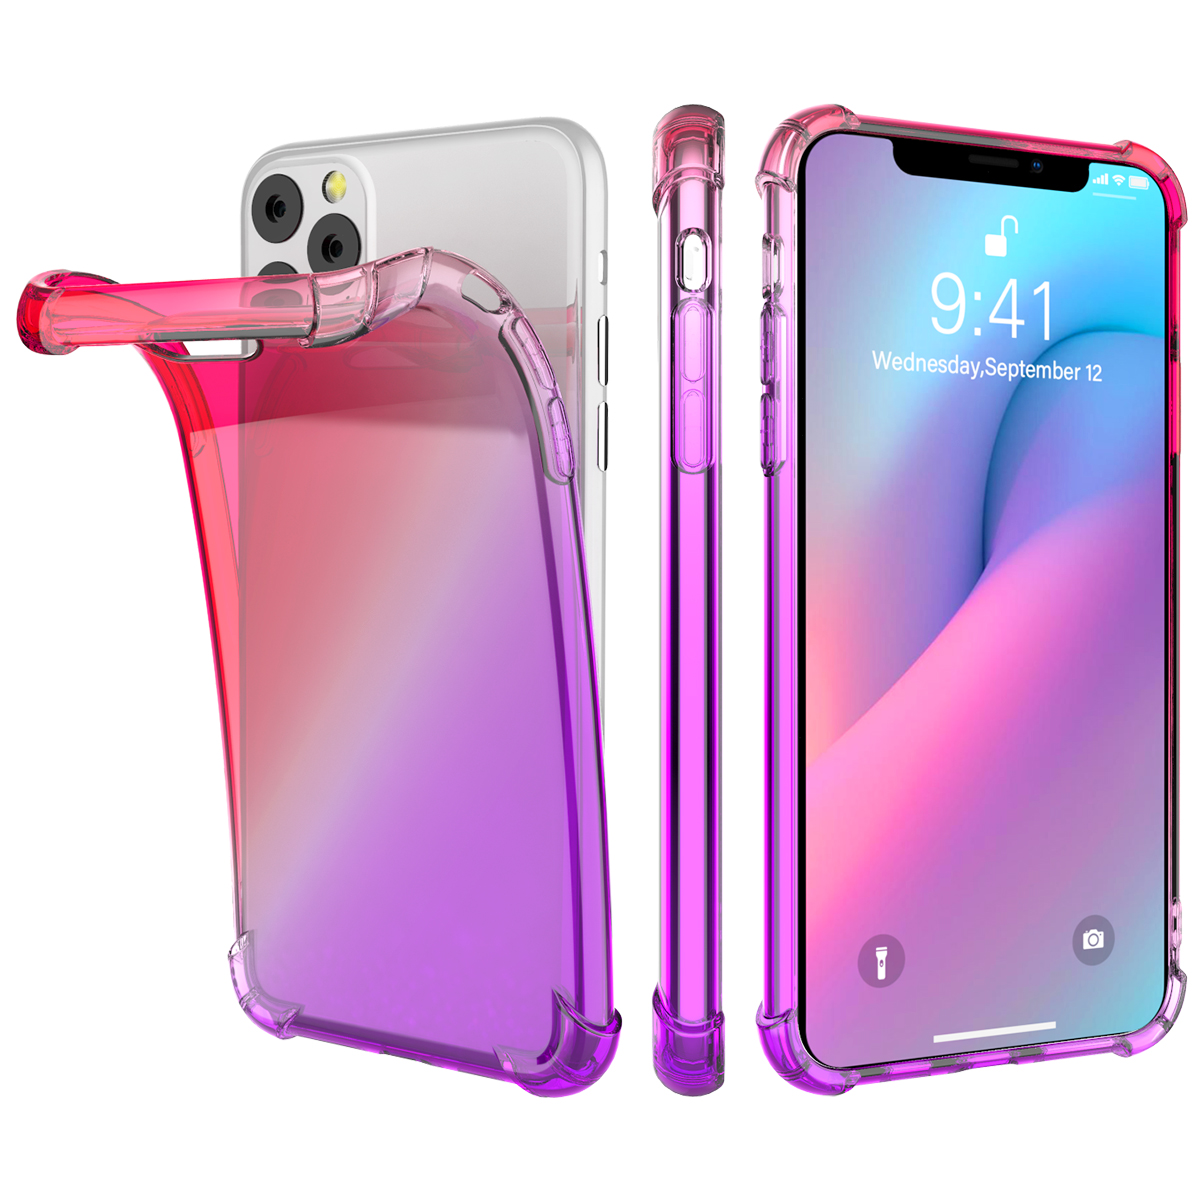 Gradient Soft TPU Case for iPhone 11/11 Pro/11 Pro Max 45